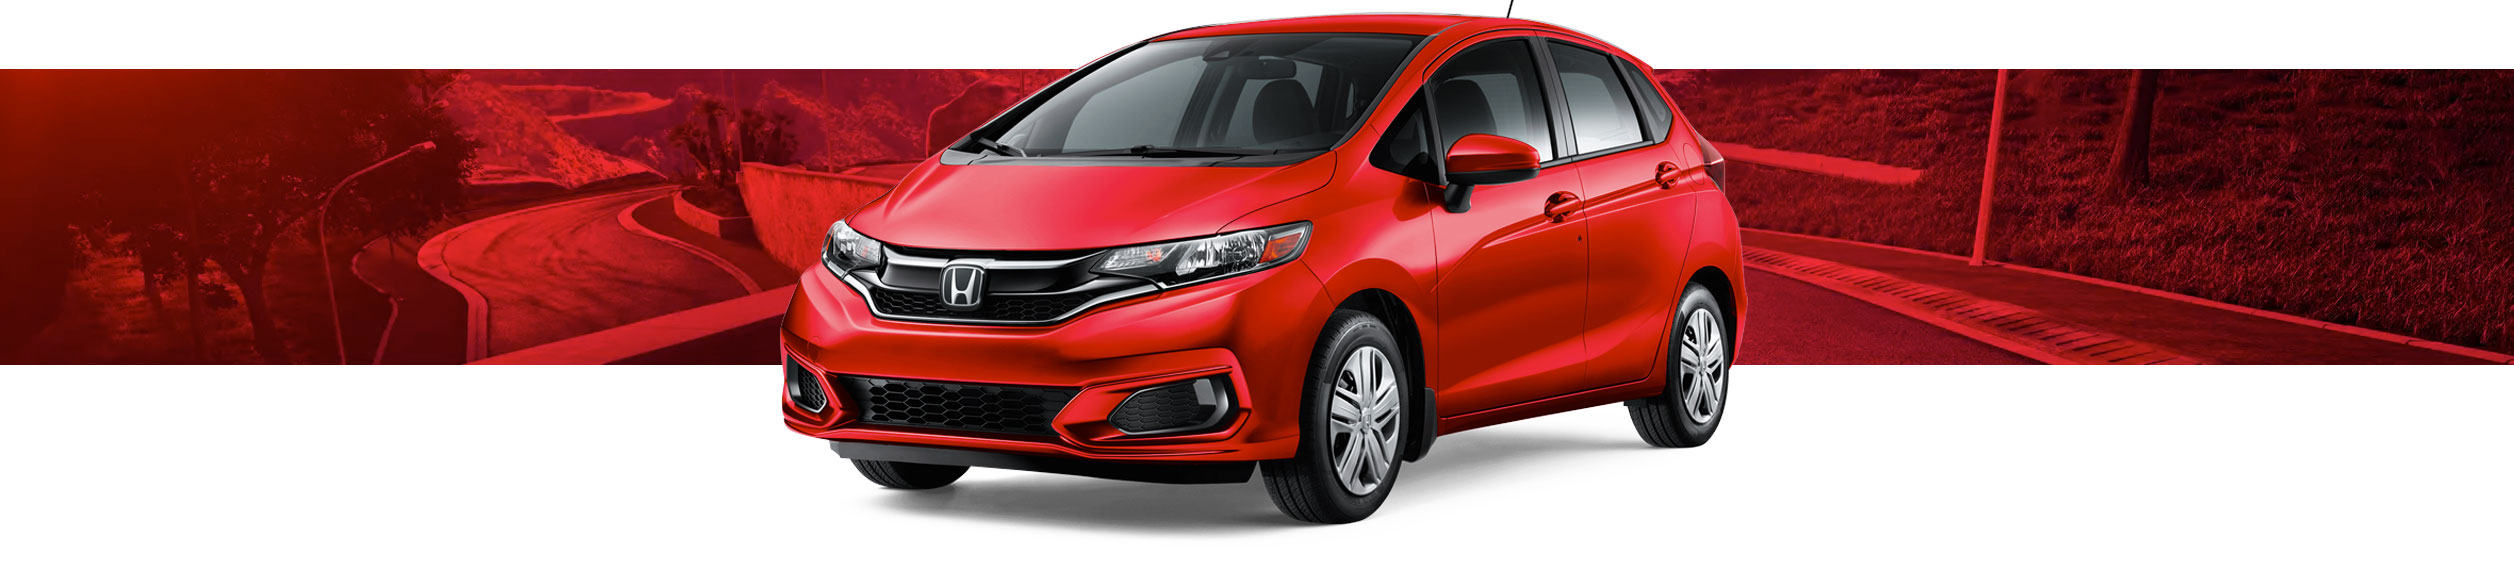 2019 Honda Fit | Honda Red Deer